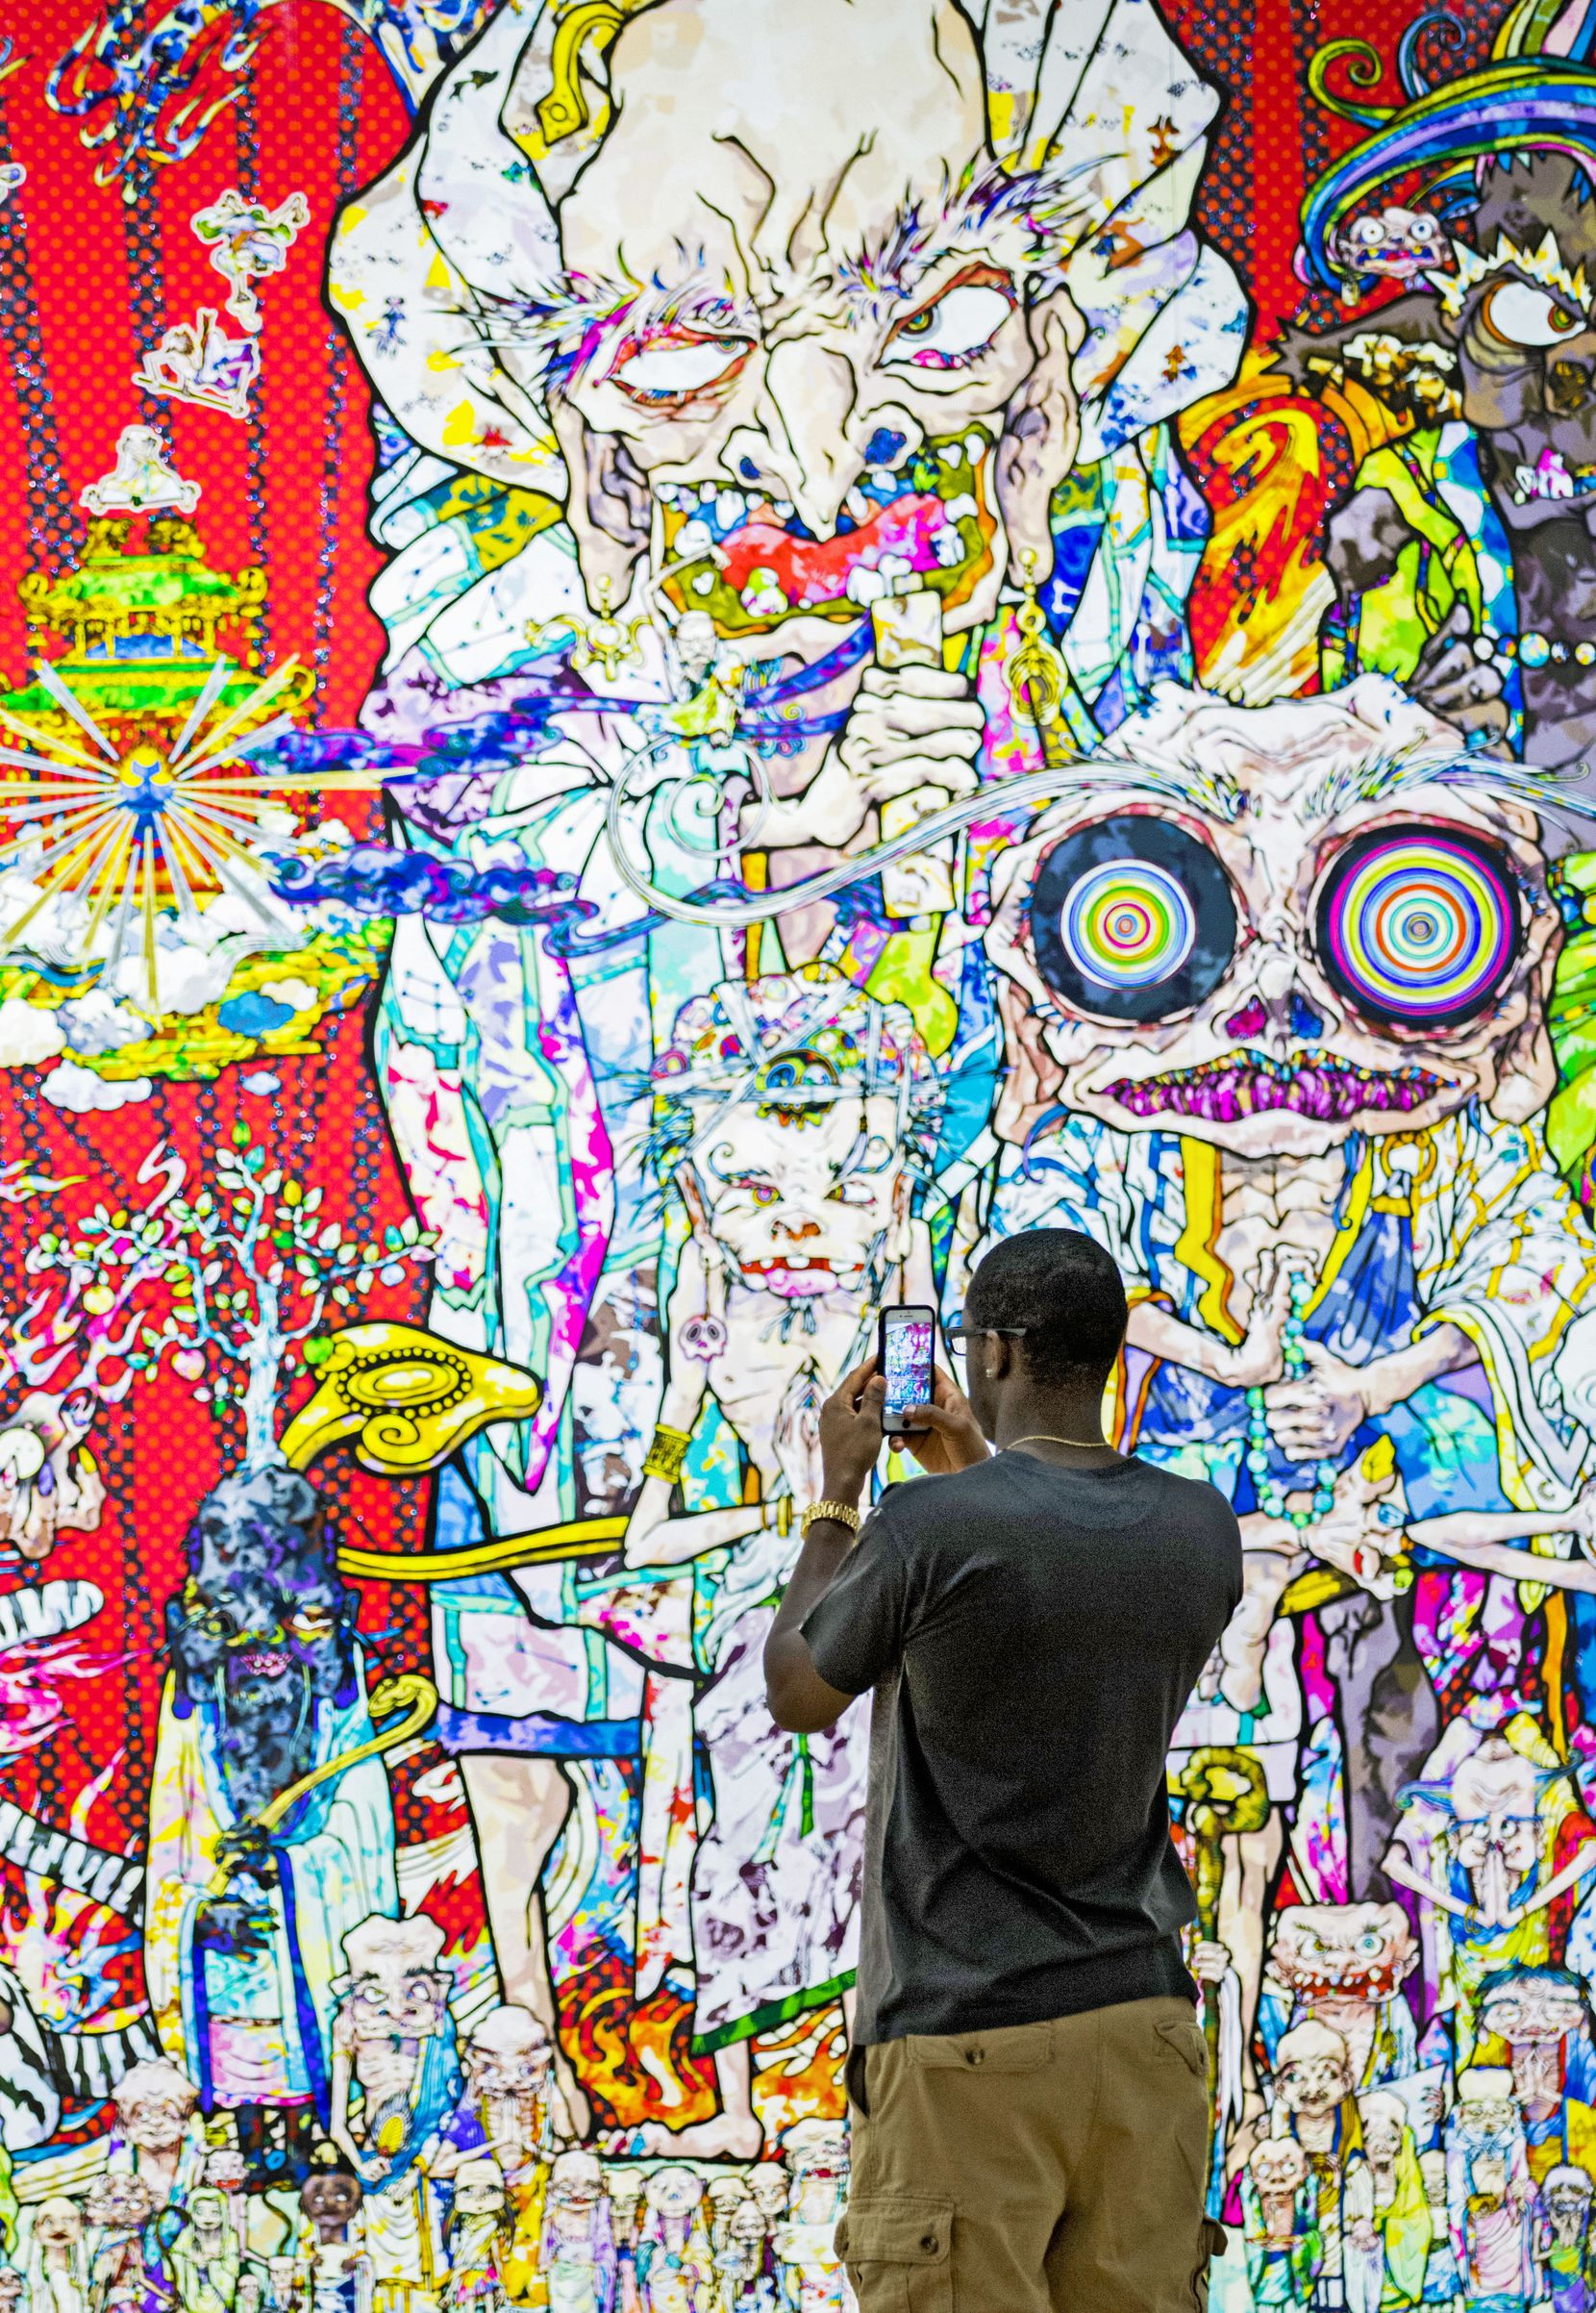 """Dominique Carter takes photos with his cellphone for social media at Takashi Murakami's exhibition, """"The Octopus Eats Its Own Leg,"""" at the Modern Art Museum of Fort Worth on July 20, 2018."""